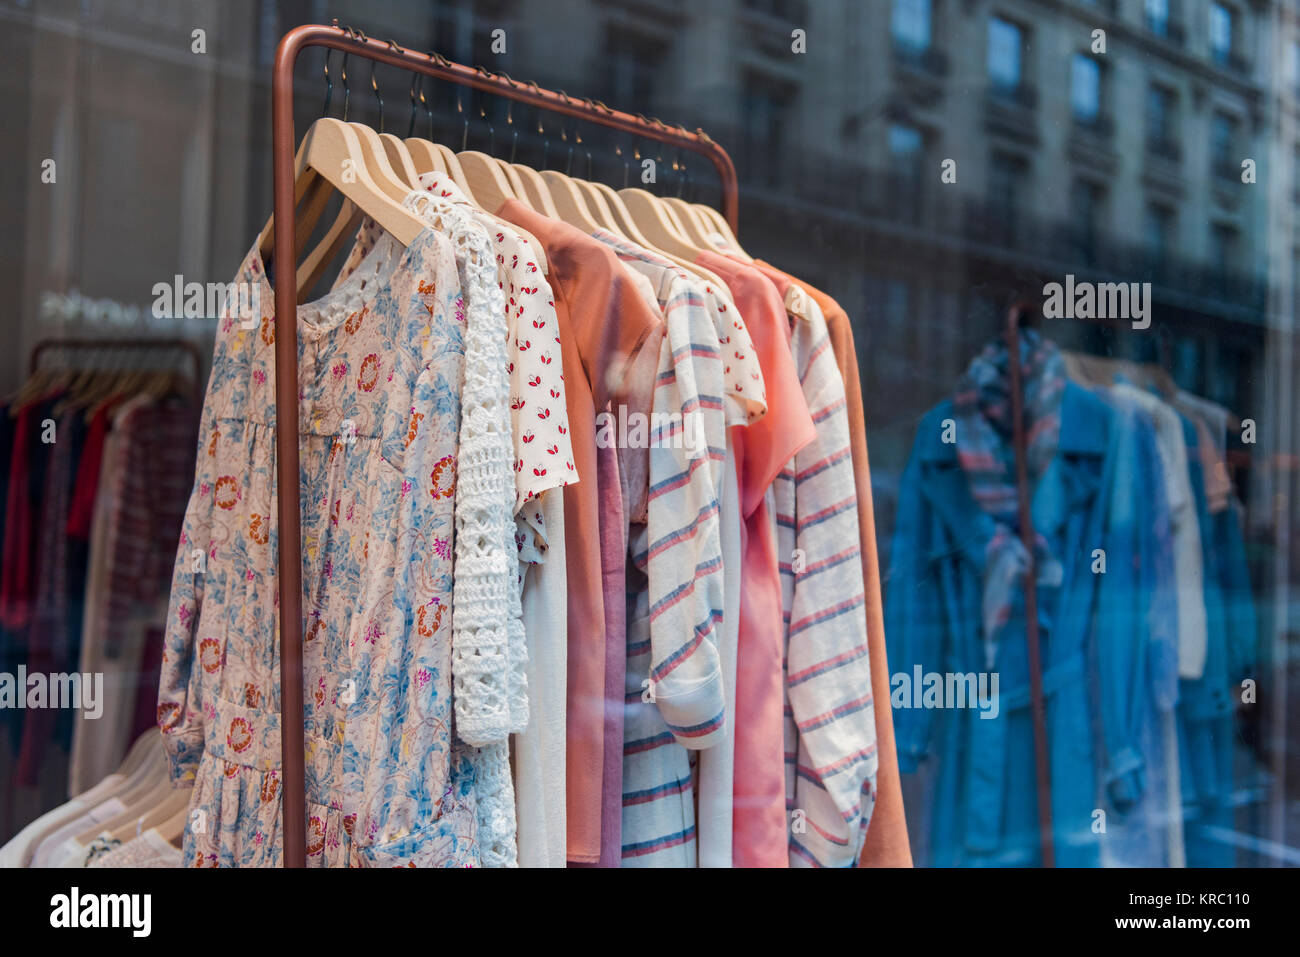 39b8786179e Fashionable clothes in a boutique store in Paris Stock Photo ...